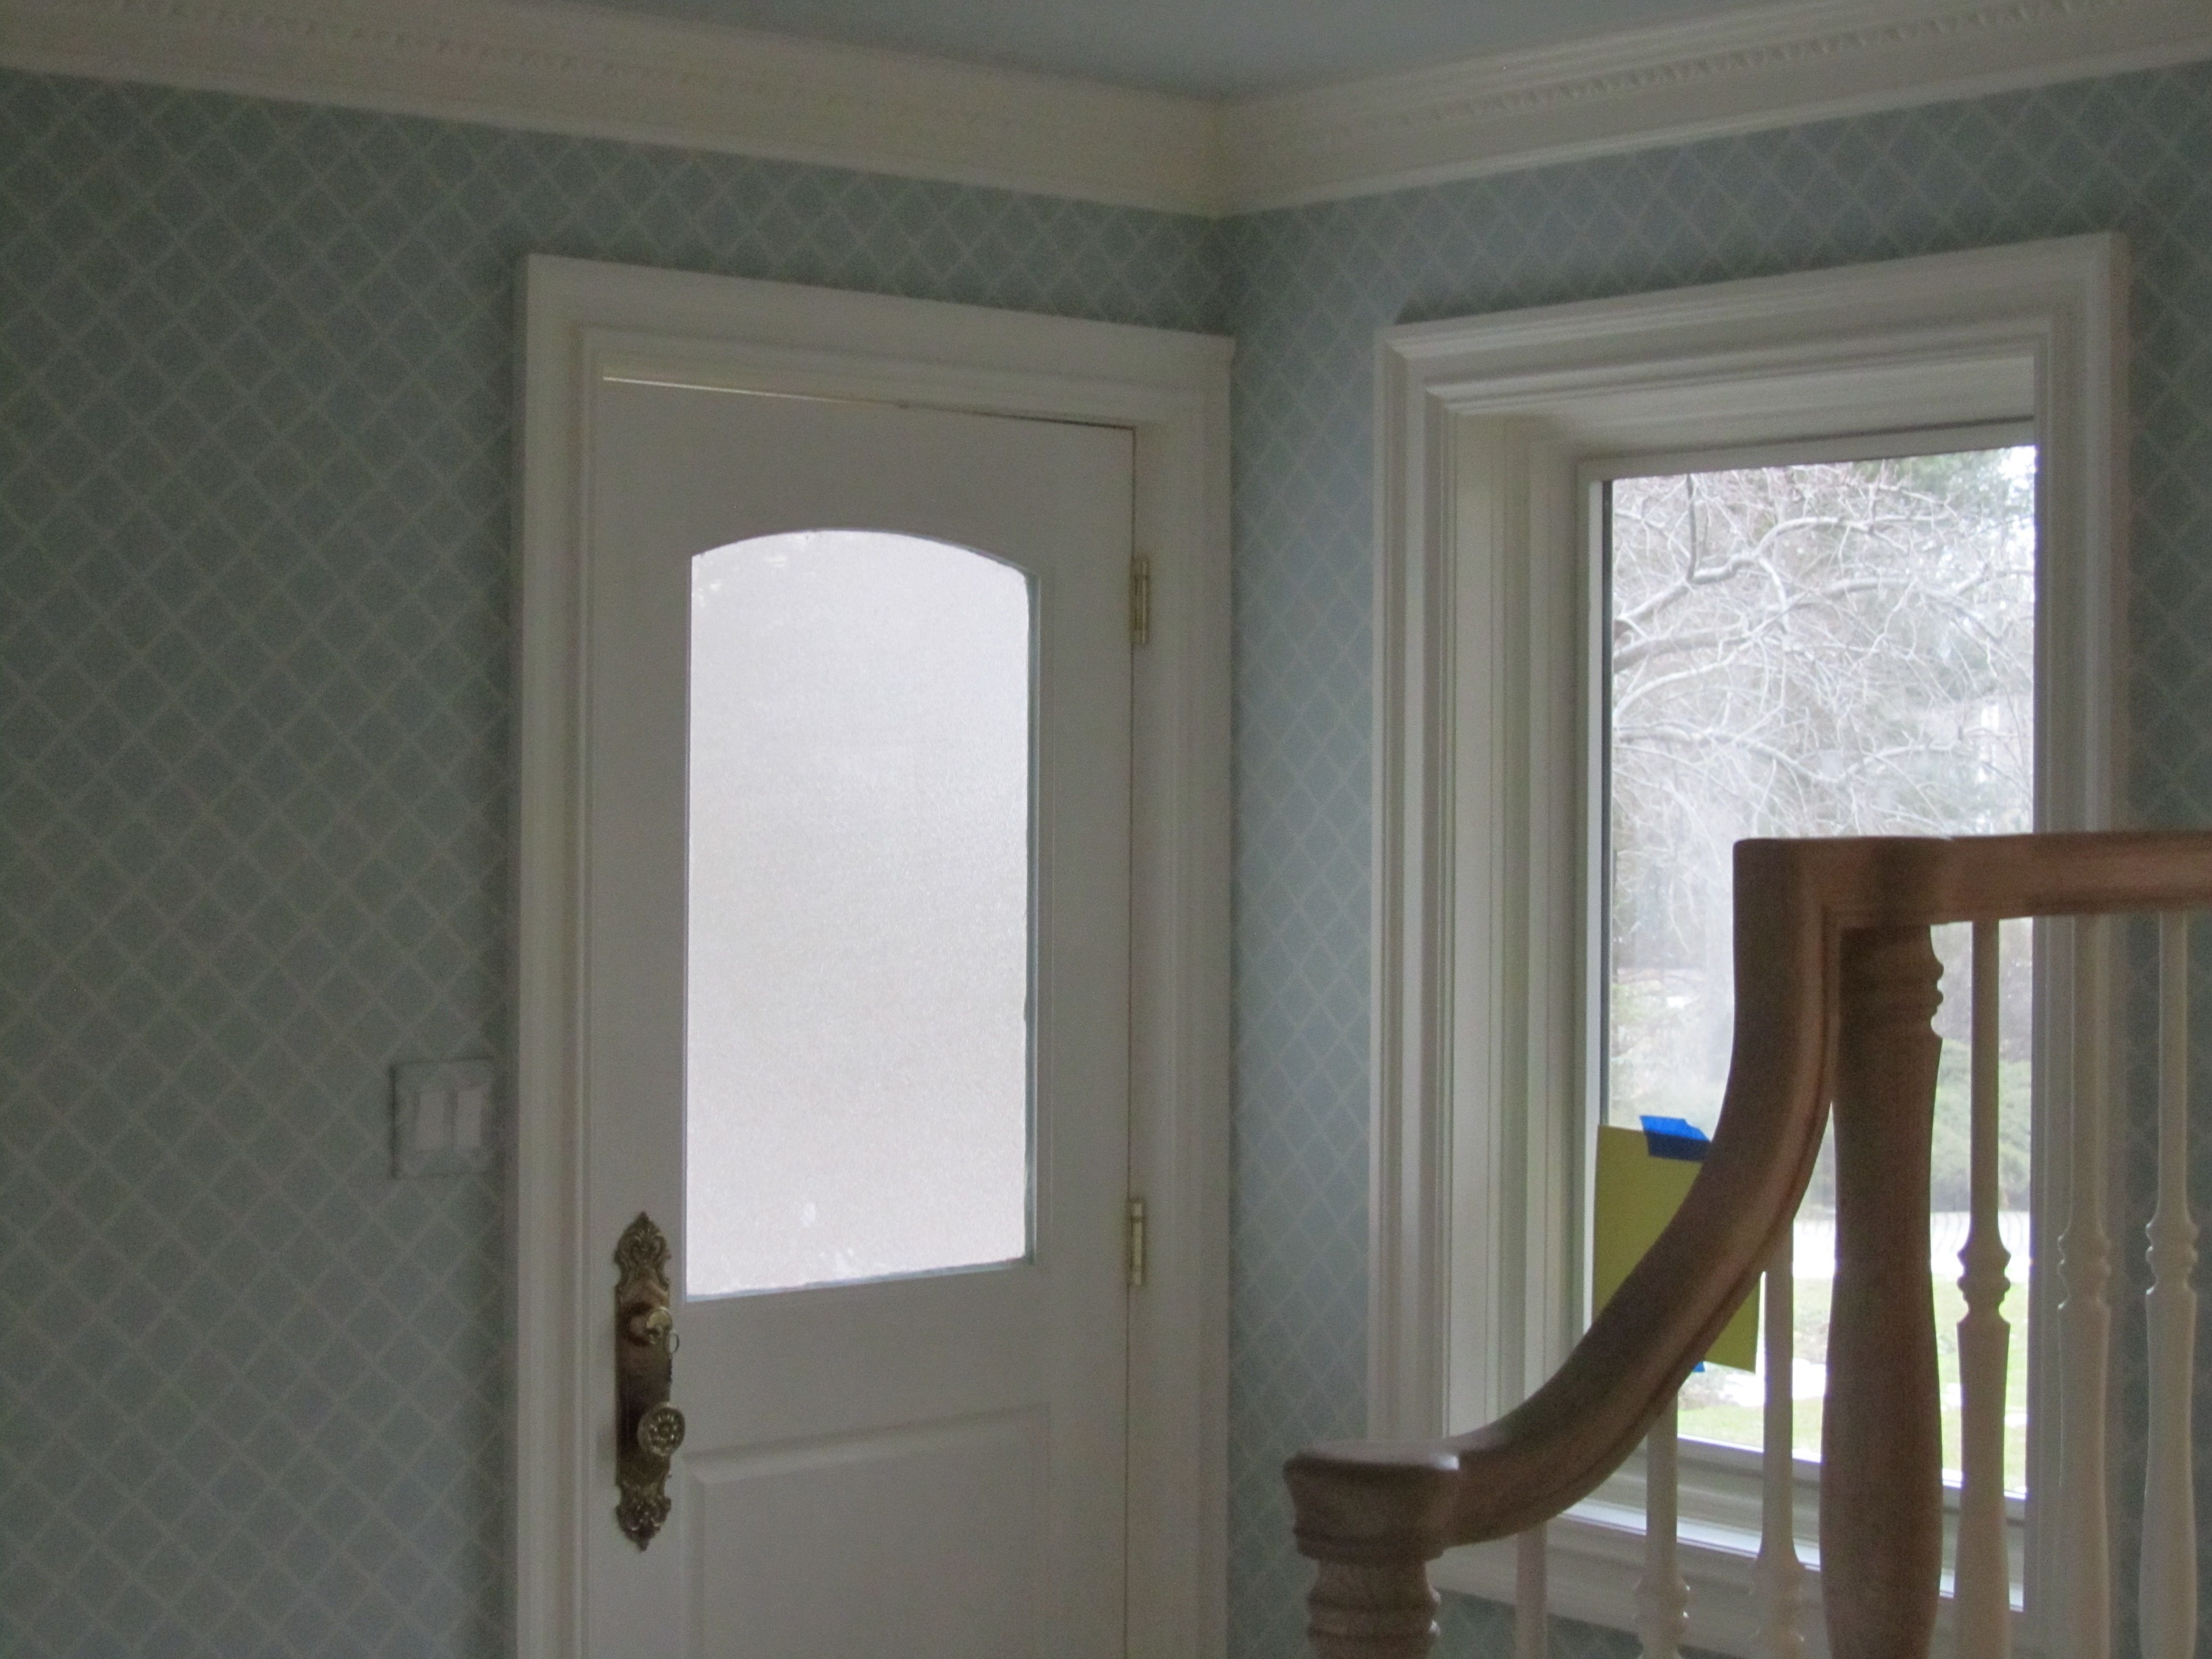 Professional Wallpaper Installation In Saddle River Nj County House How To Install Wallpaper Saddle River